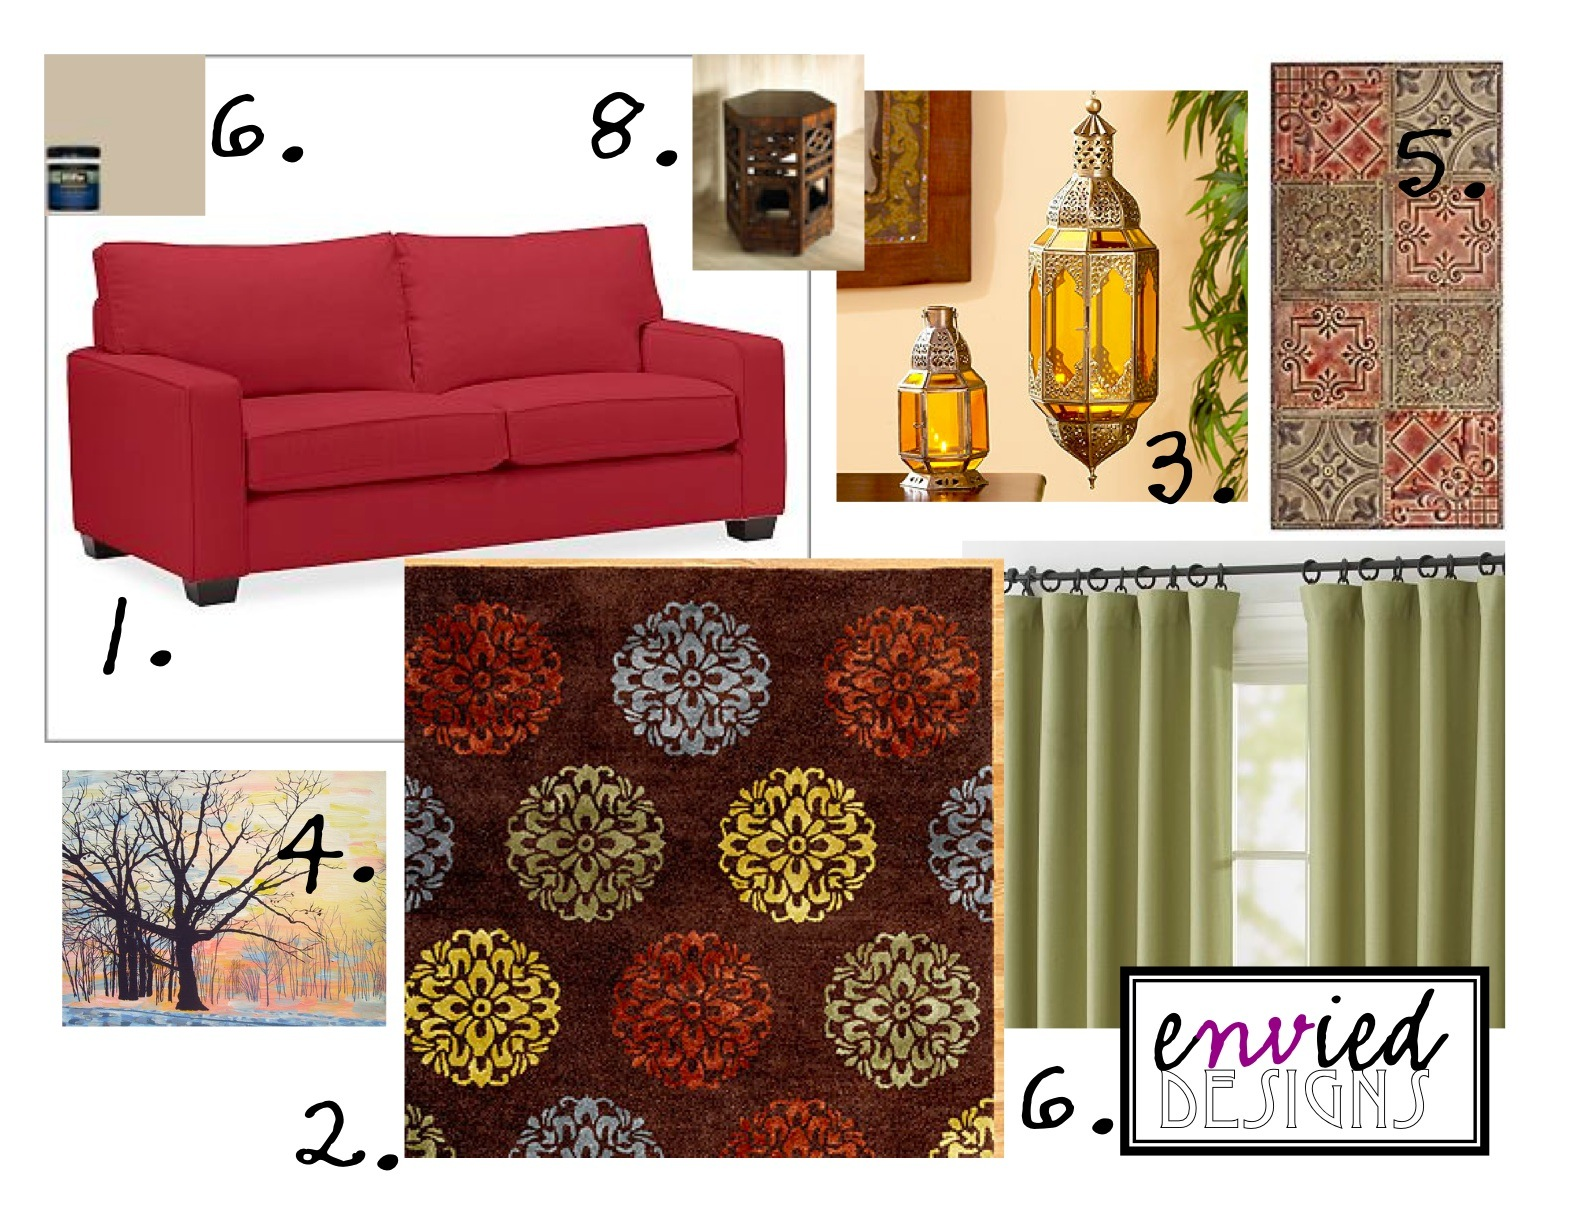 envied designs moroccan inspired living room